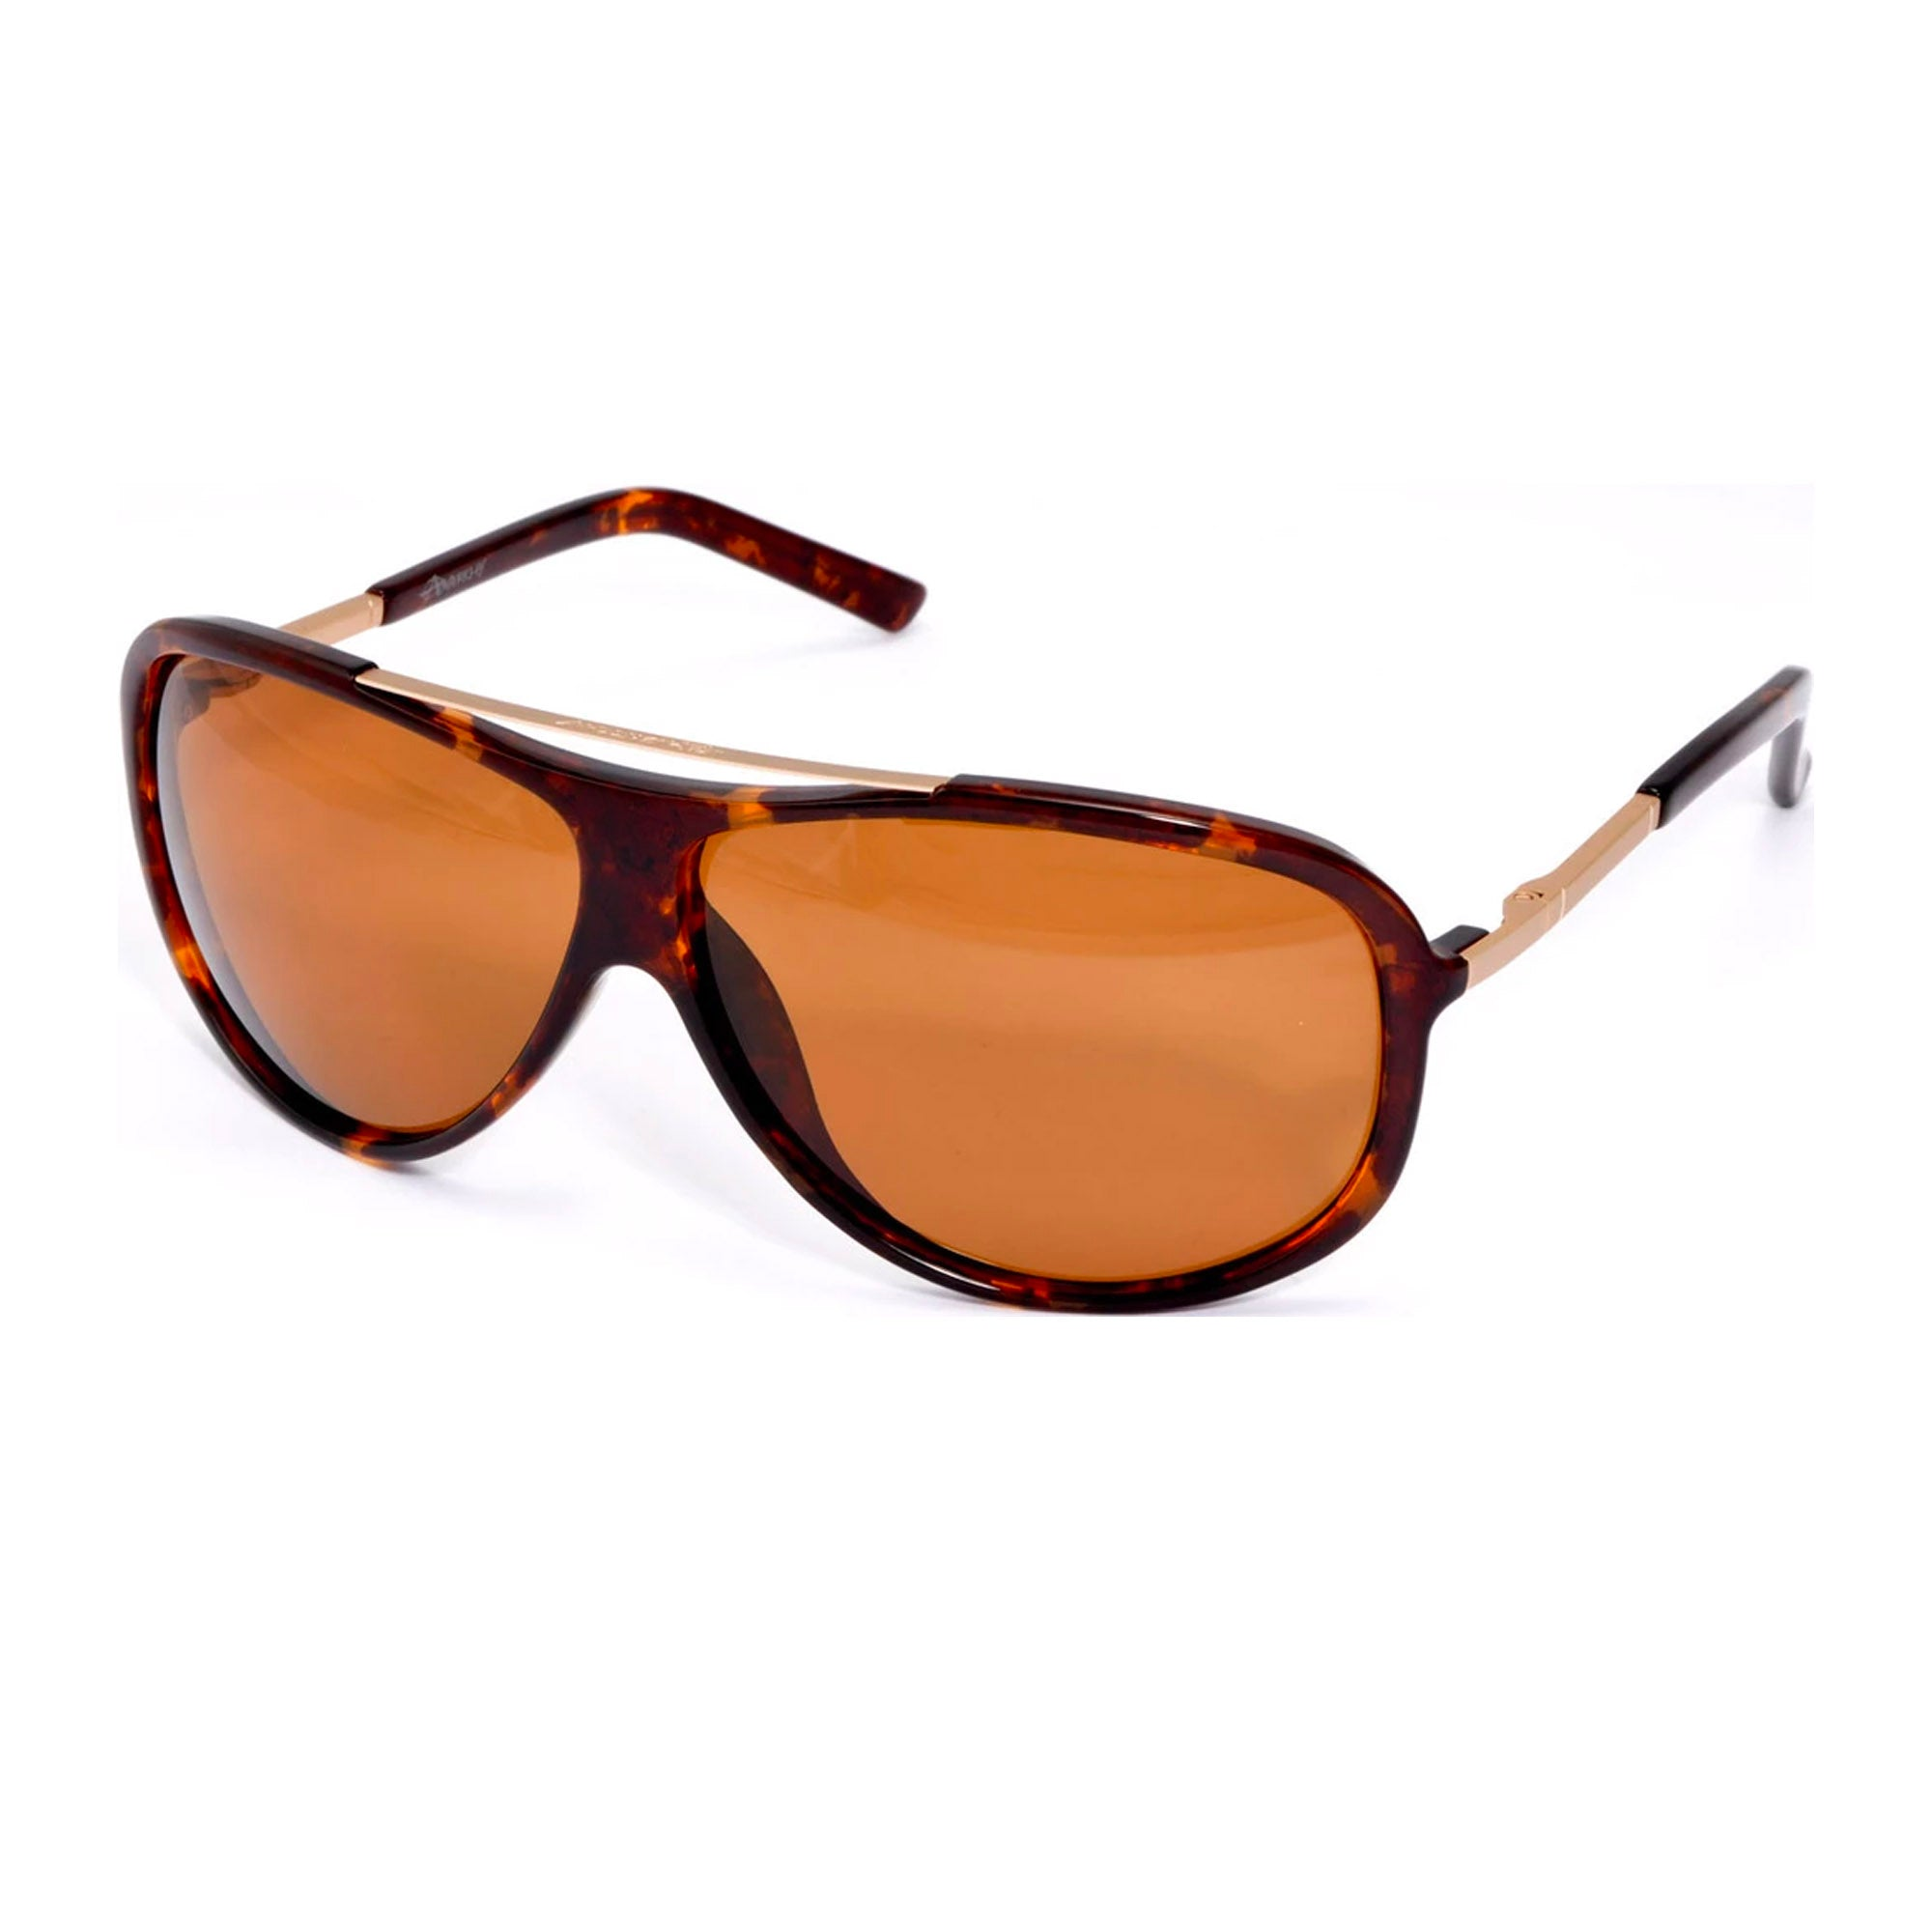 Anarchy Altercate Men's Sunglasses - Polarized